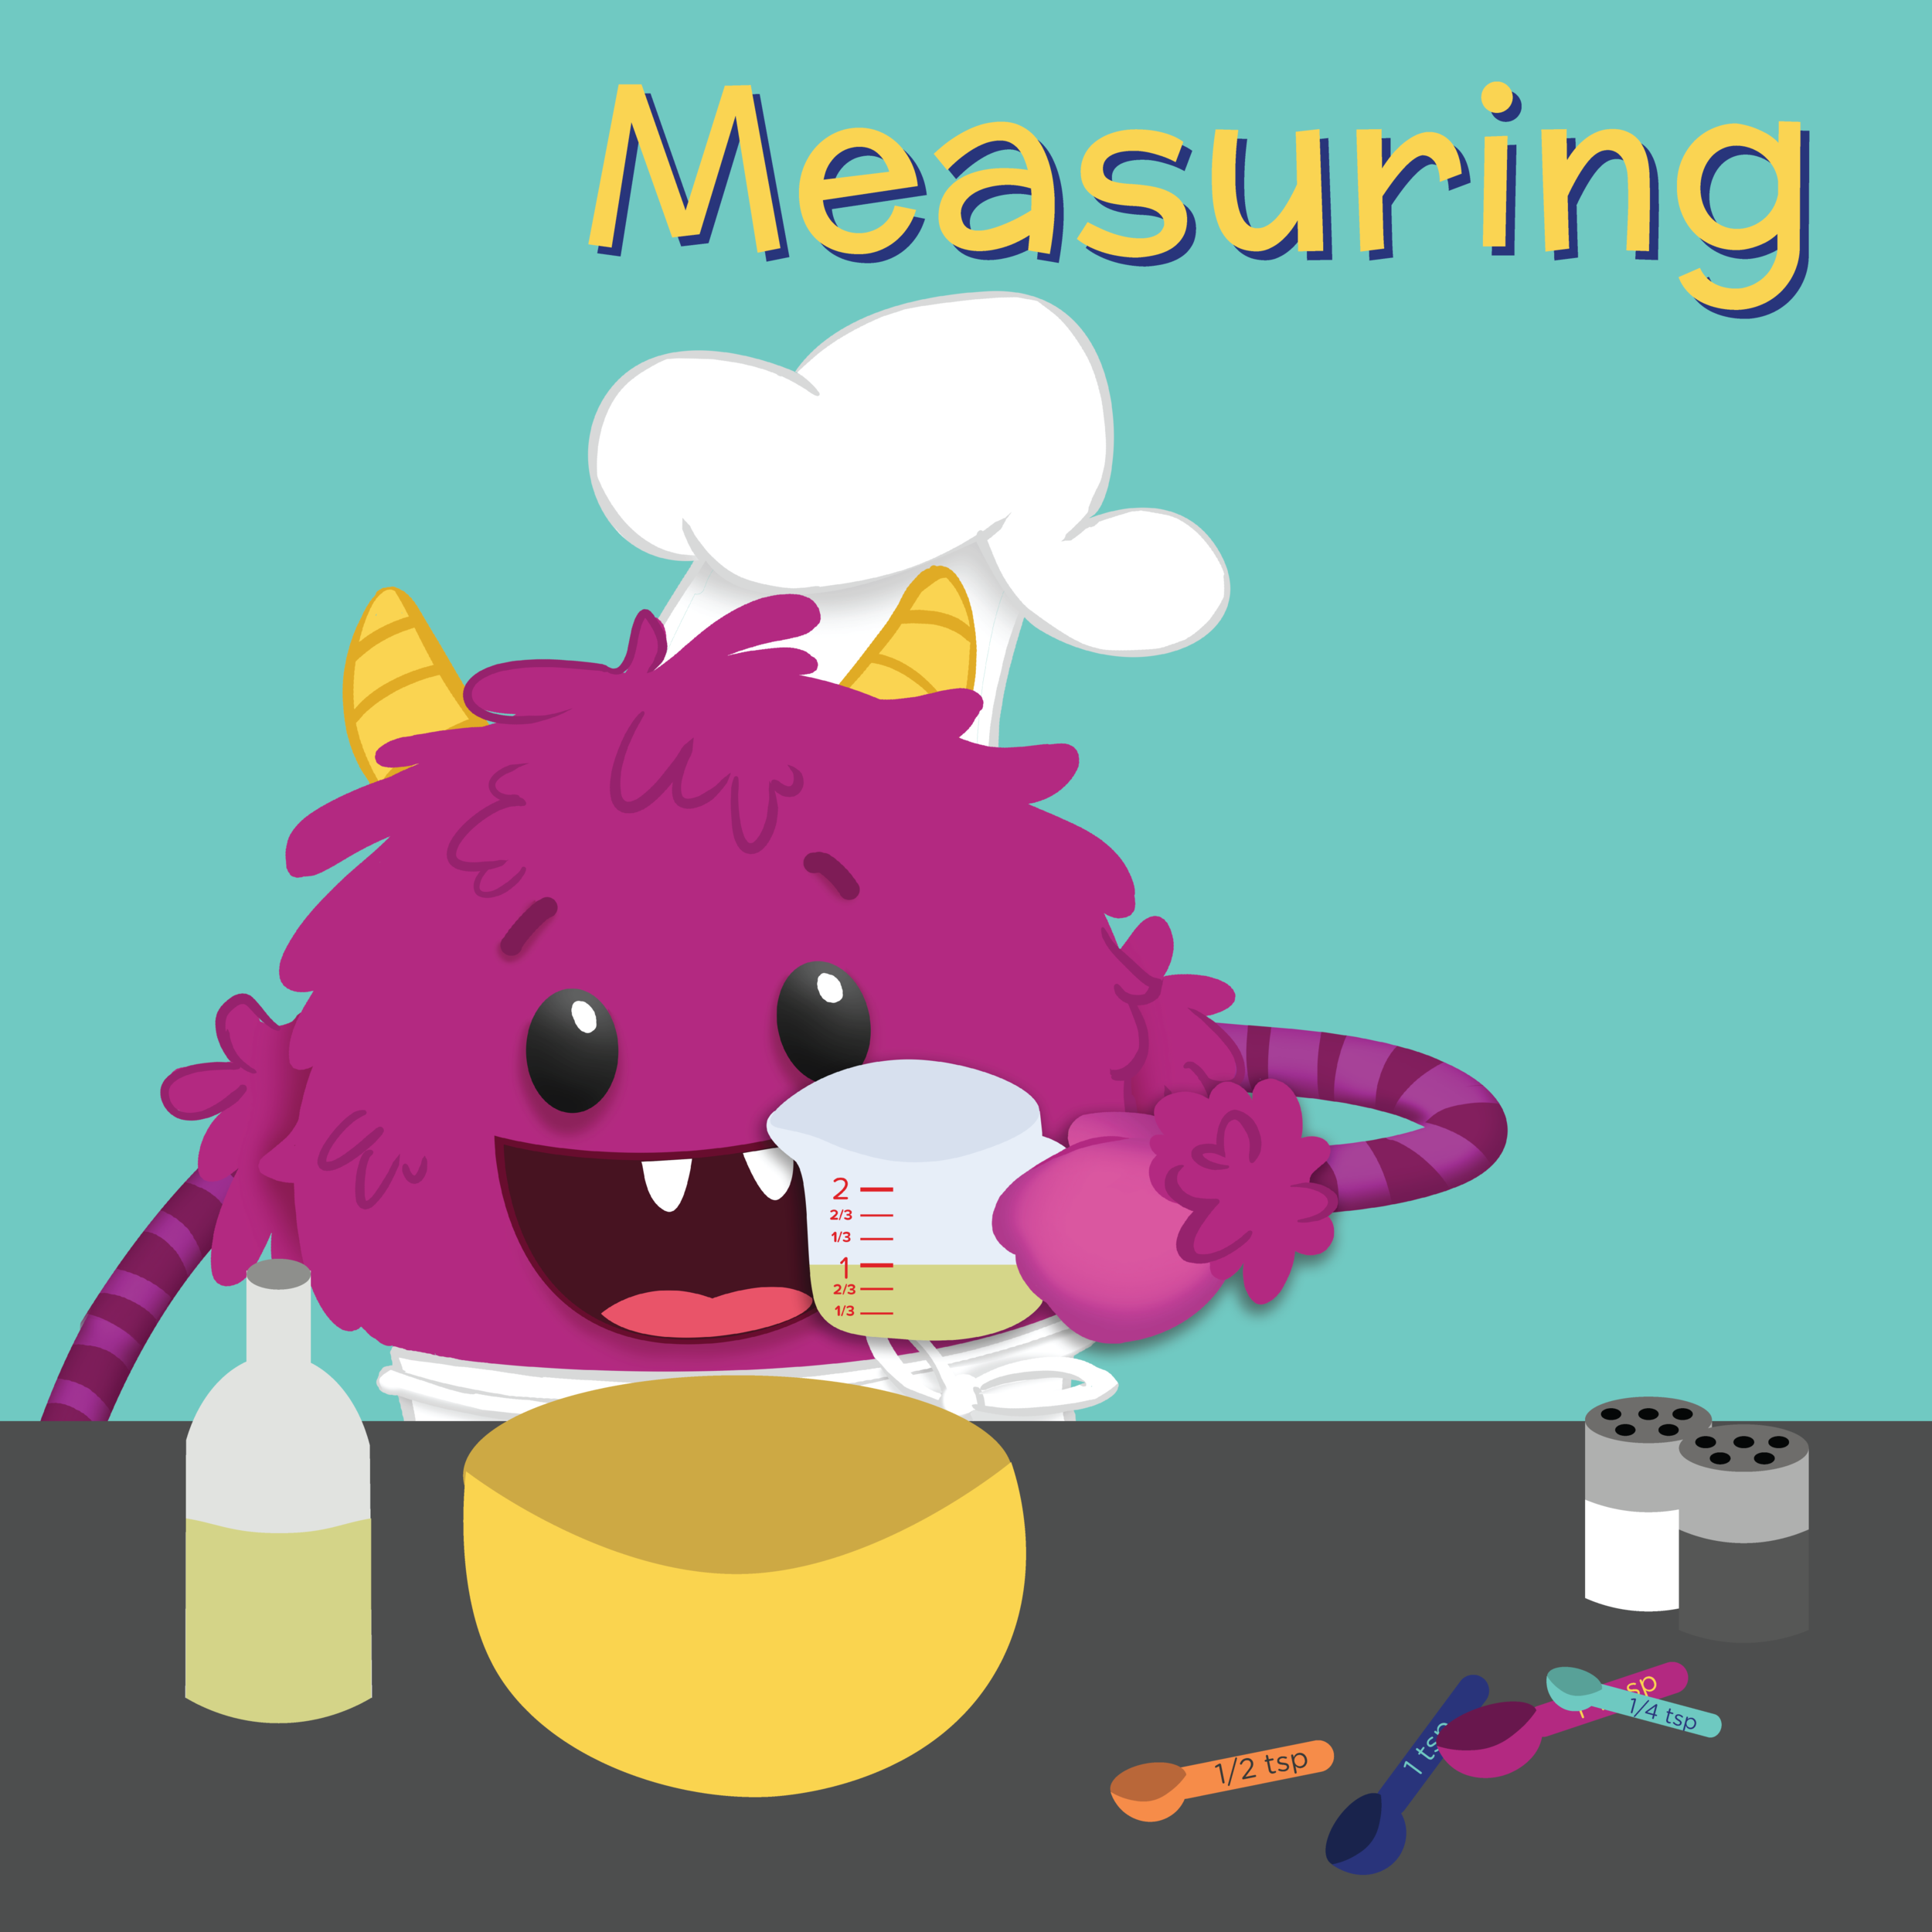 measuring-01.png